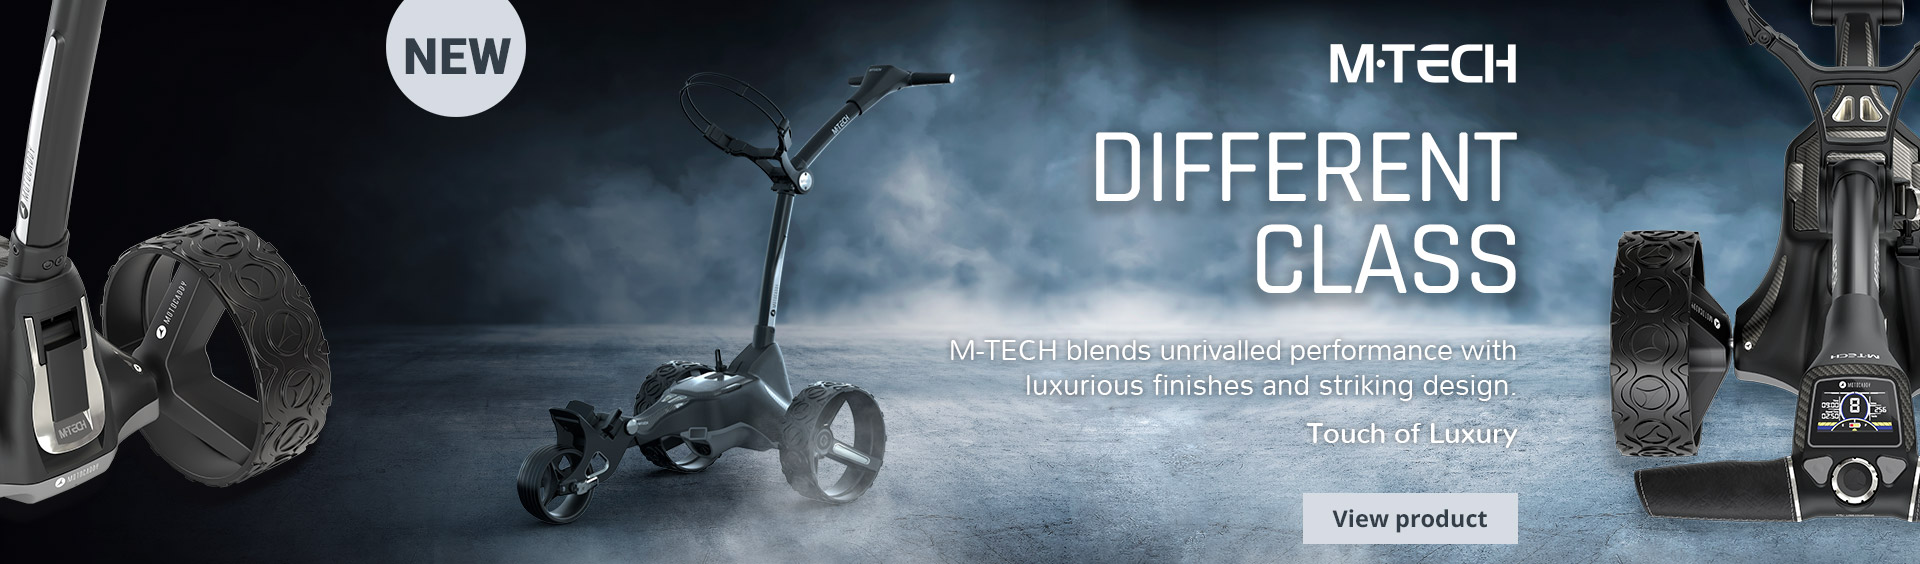 M-TECH Electric Trolley